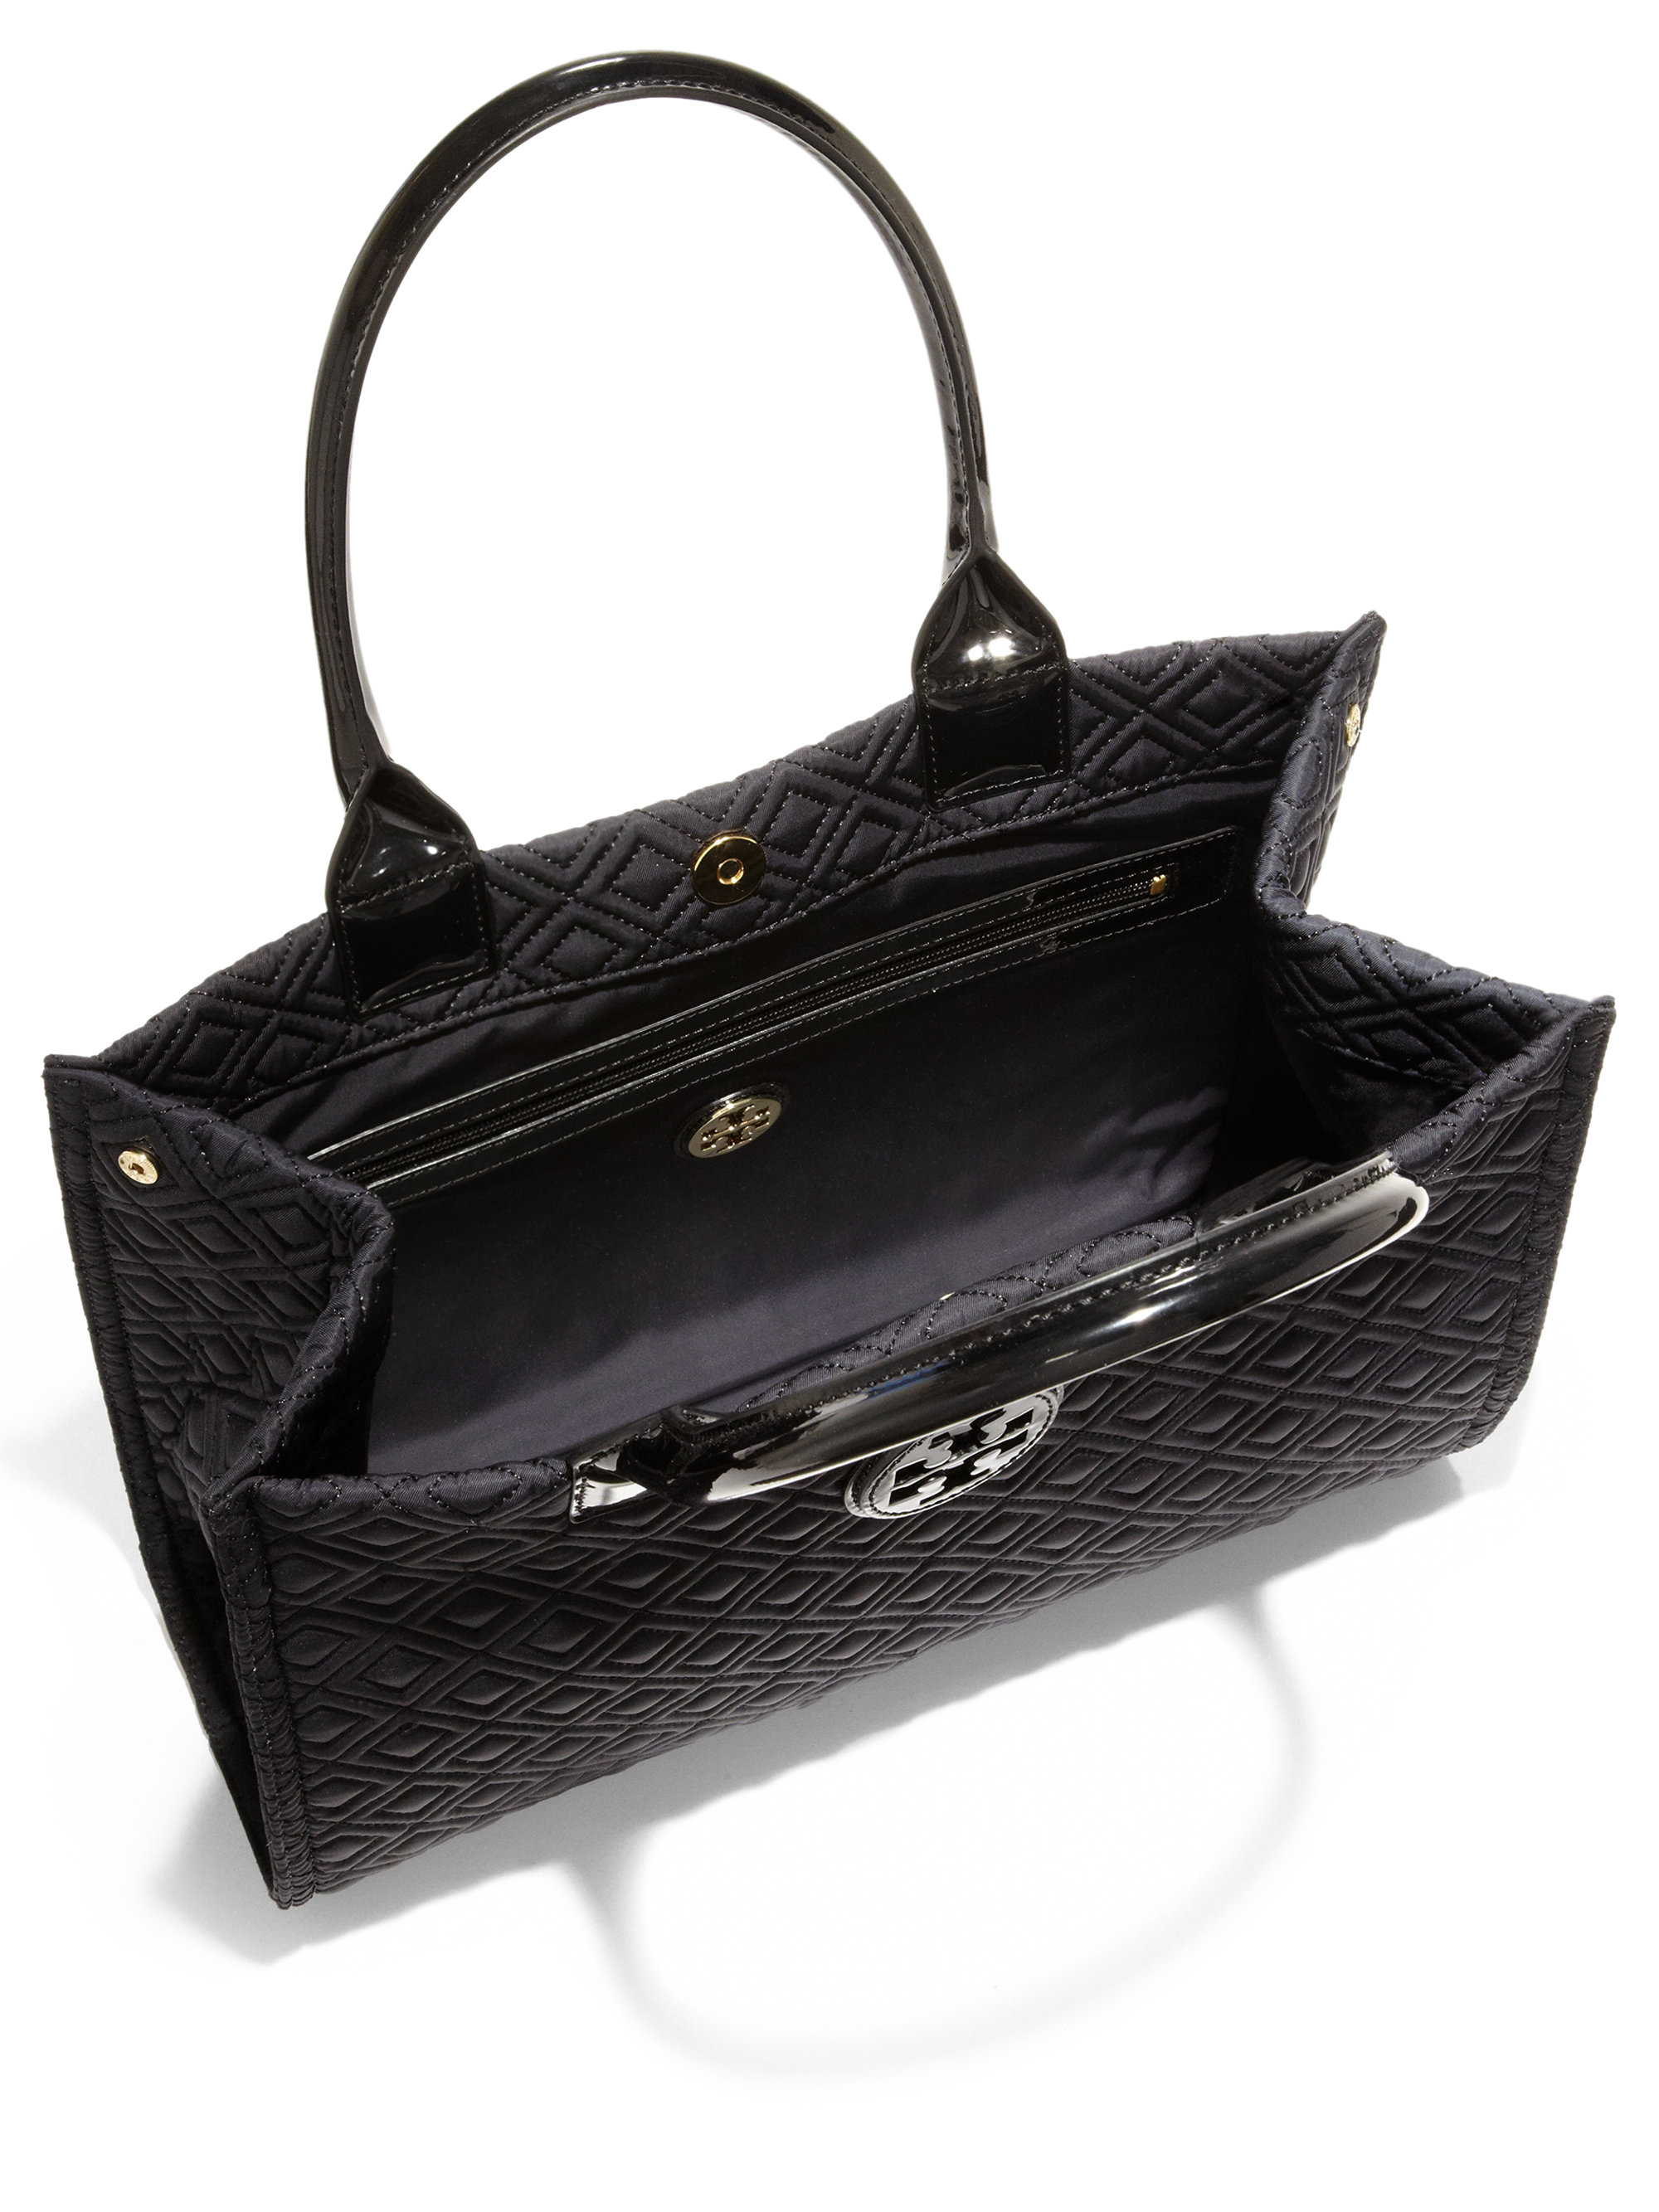 Lyst - Tory burch Mini Ella Quilted Tote in Black : tory burch quilted tote - Adamdwight.com